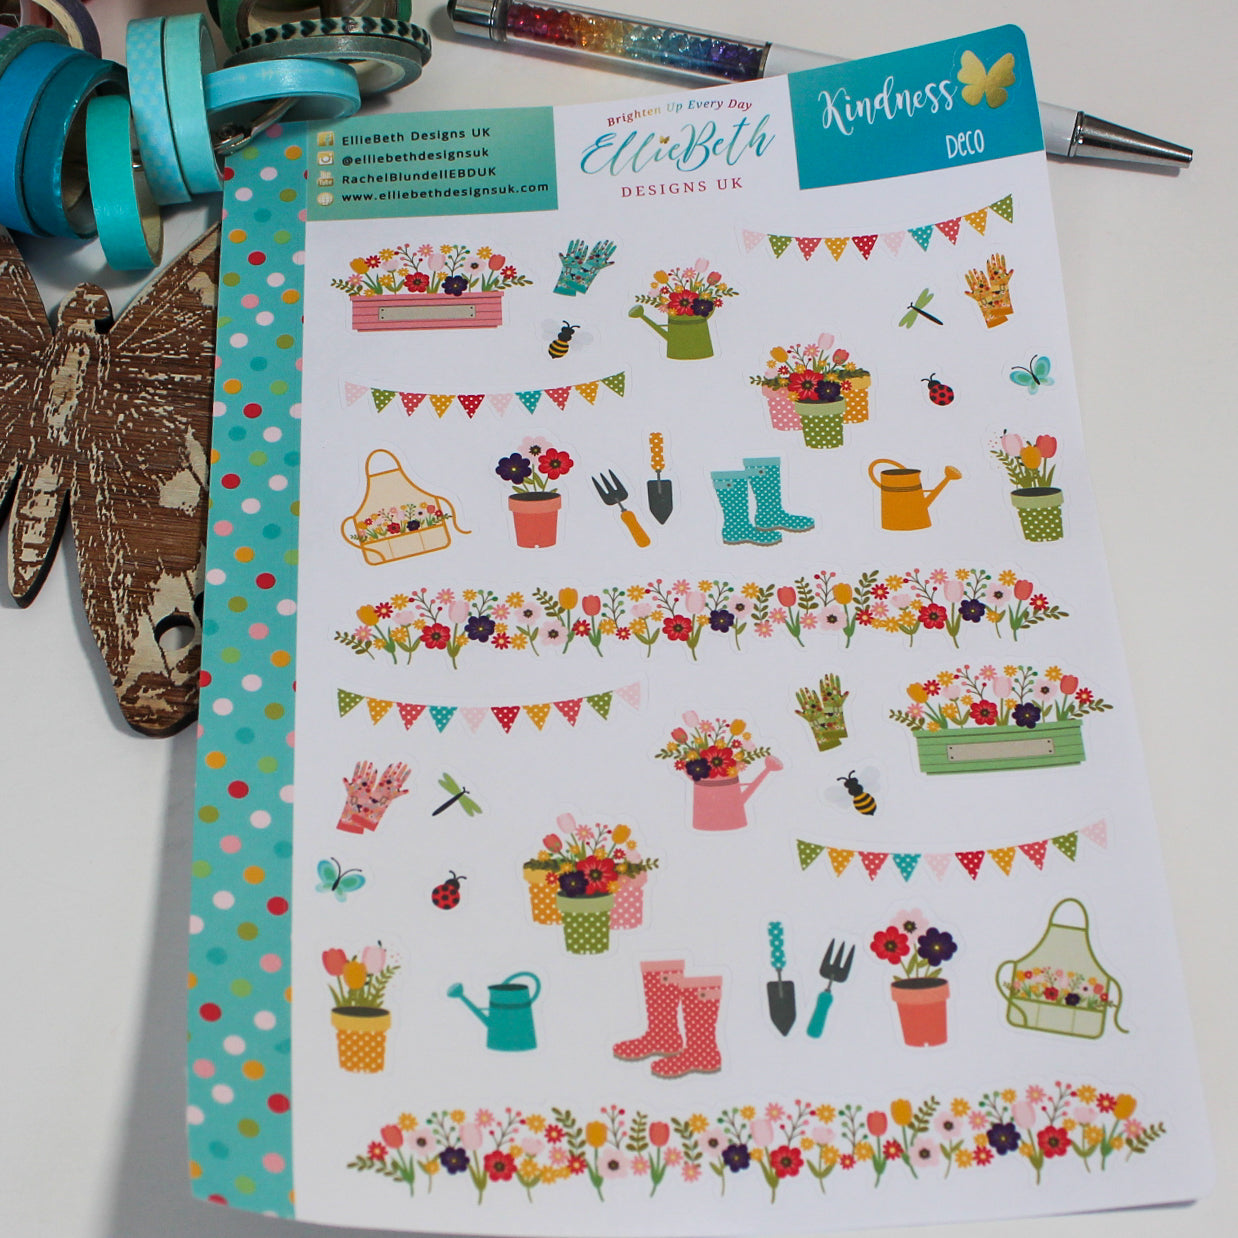 'Kindness' - Decorative Sheet -  A5 binder ready planner stickers